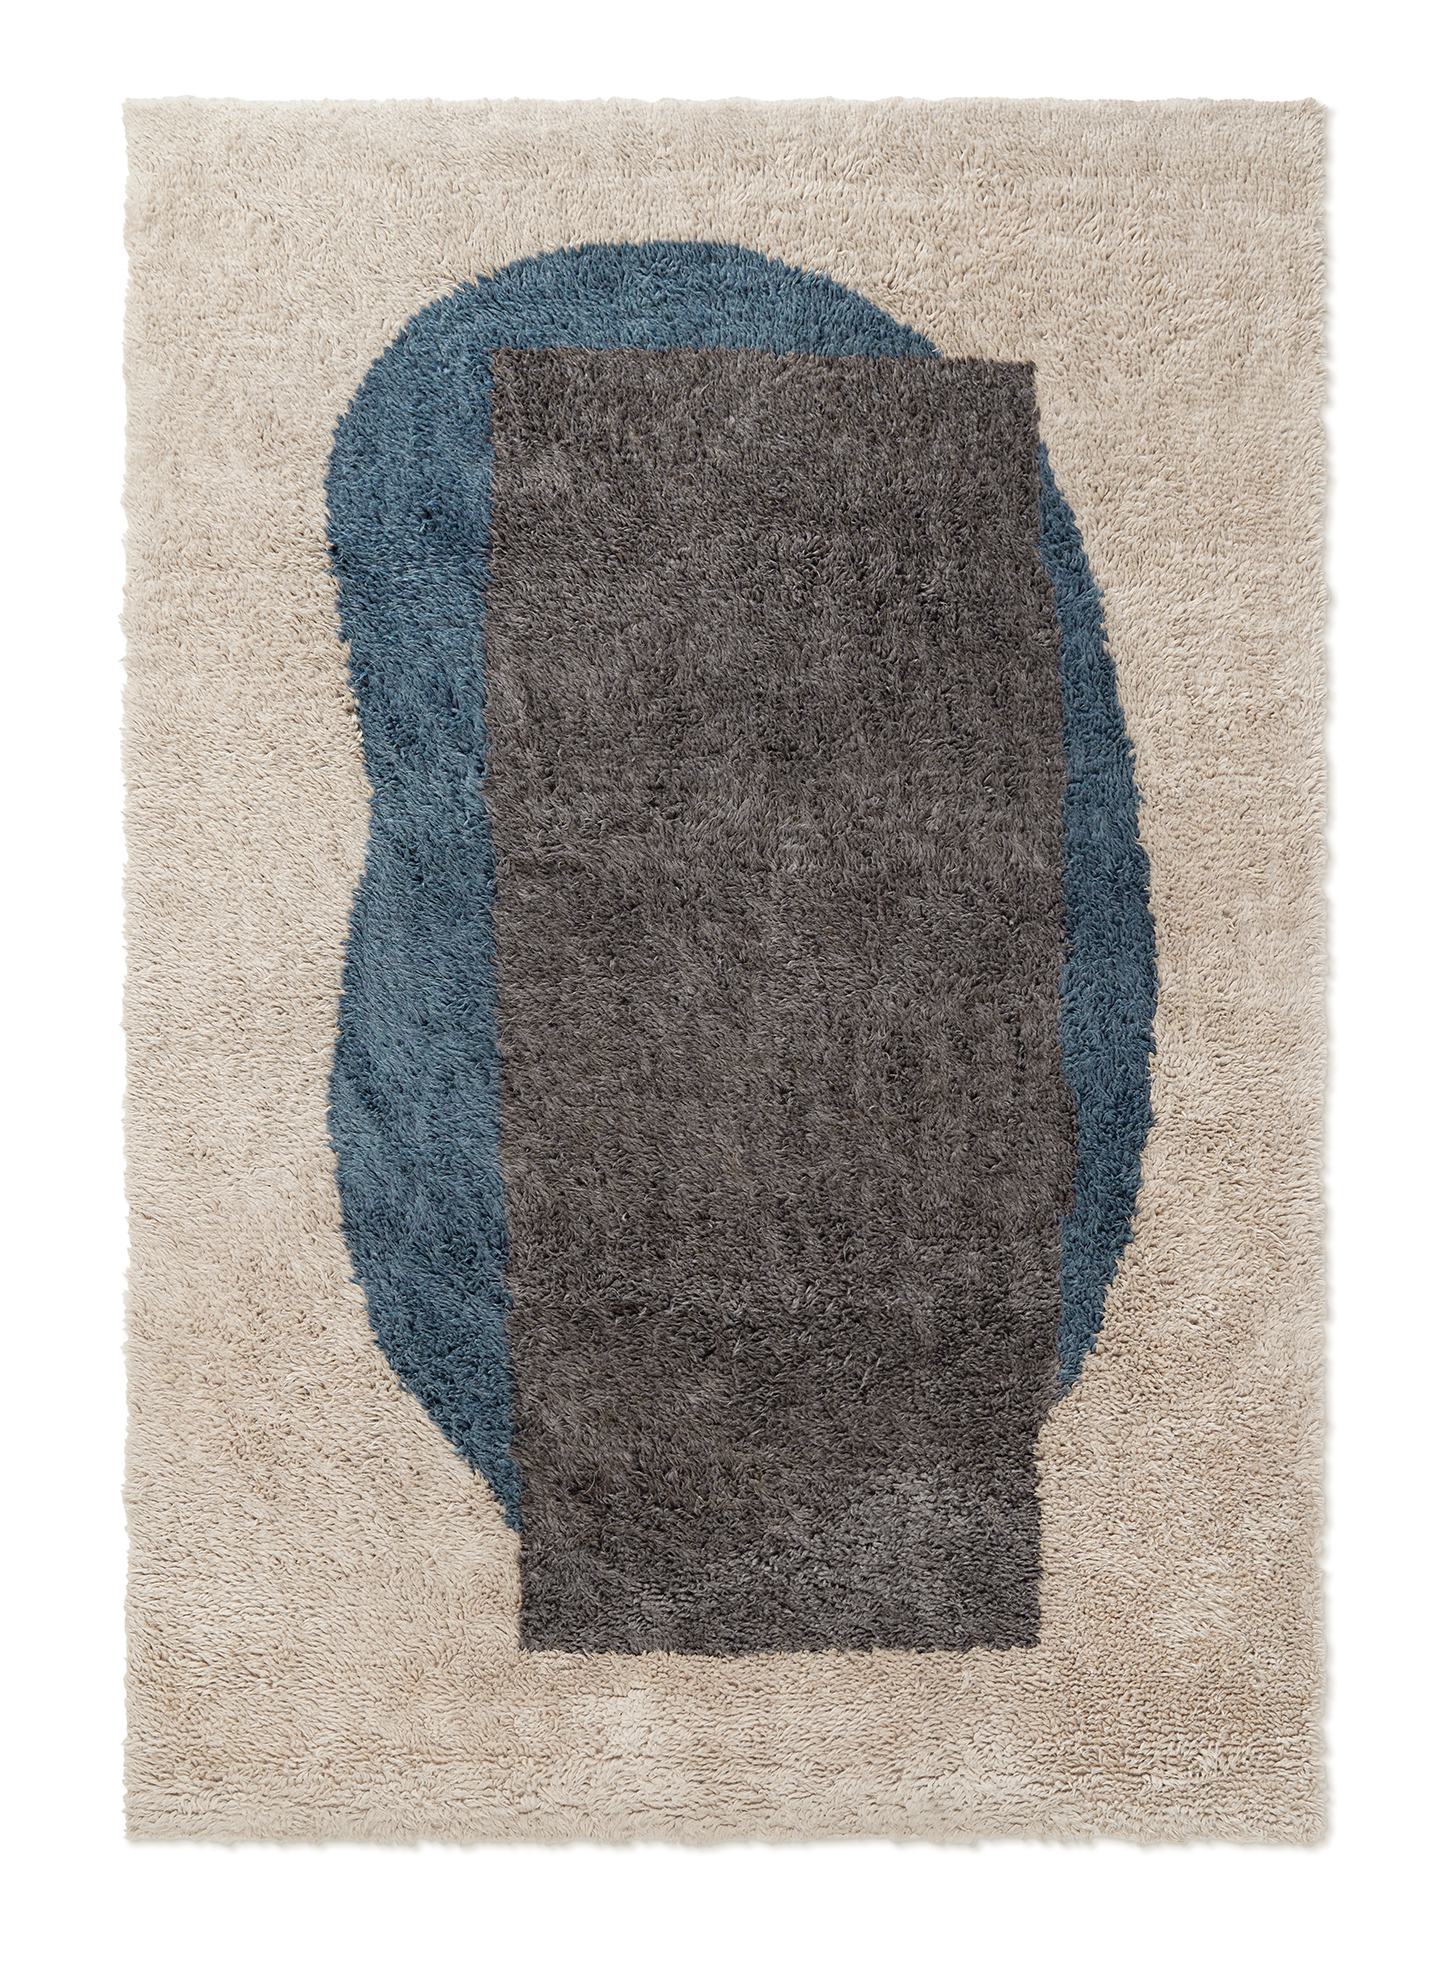 Campaign page. Product image of Monolith 2, a shaggy wool rug with an abstract pattern.